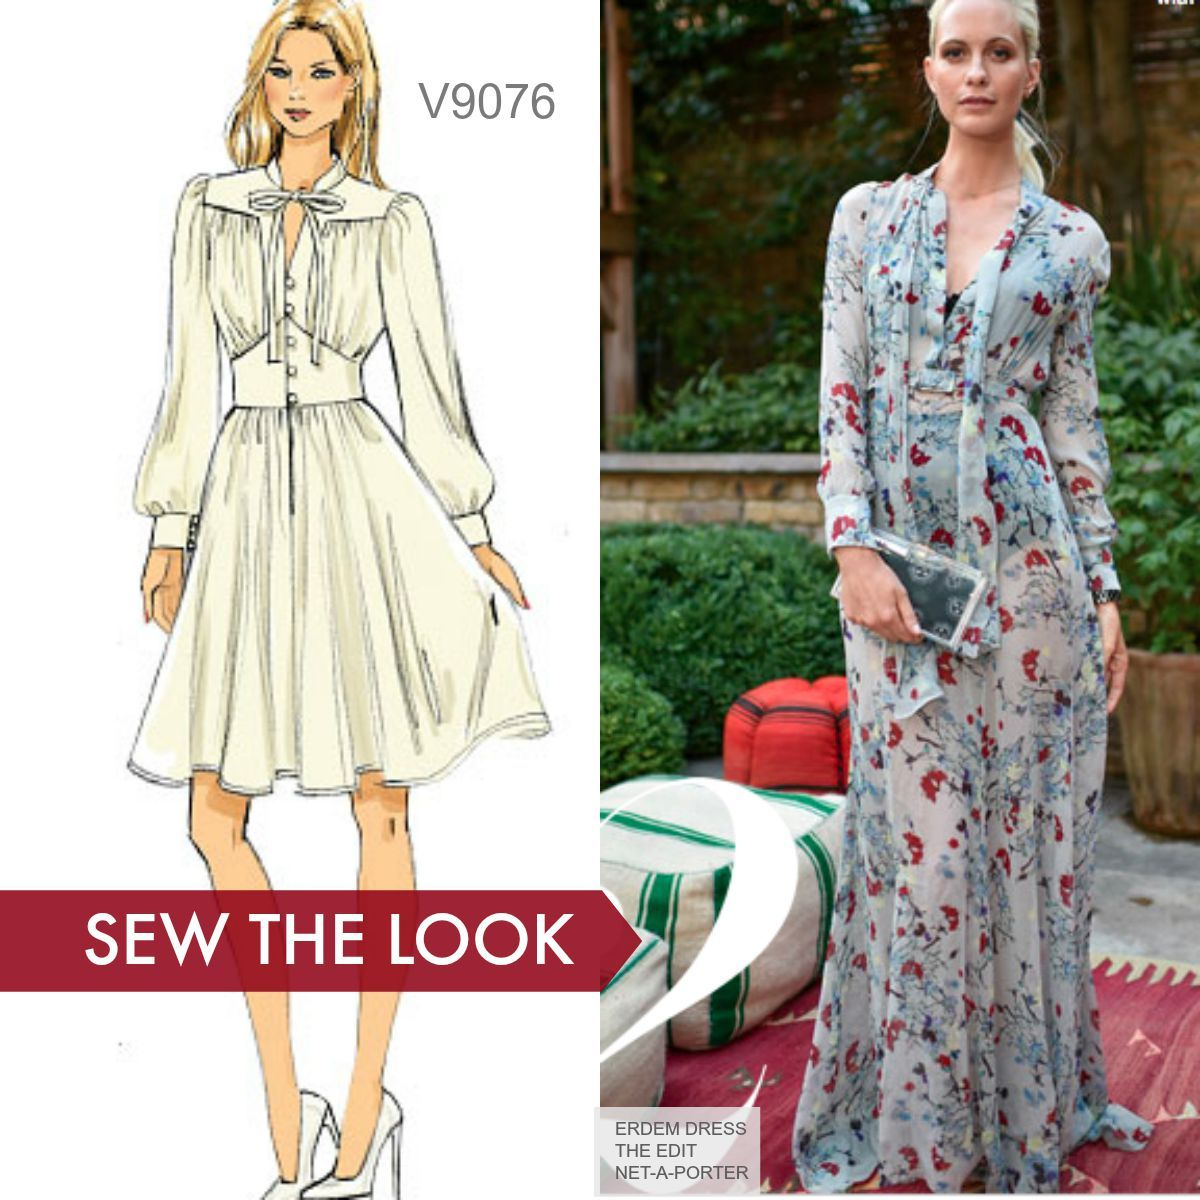 Sew the Look, boho style. Add length and wider ties at the neck to ...